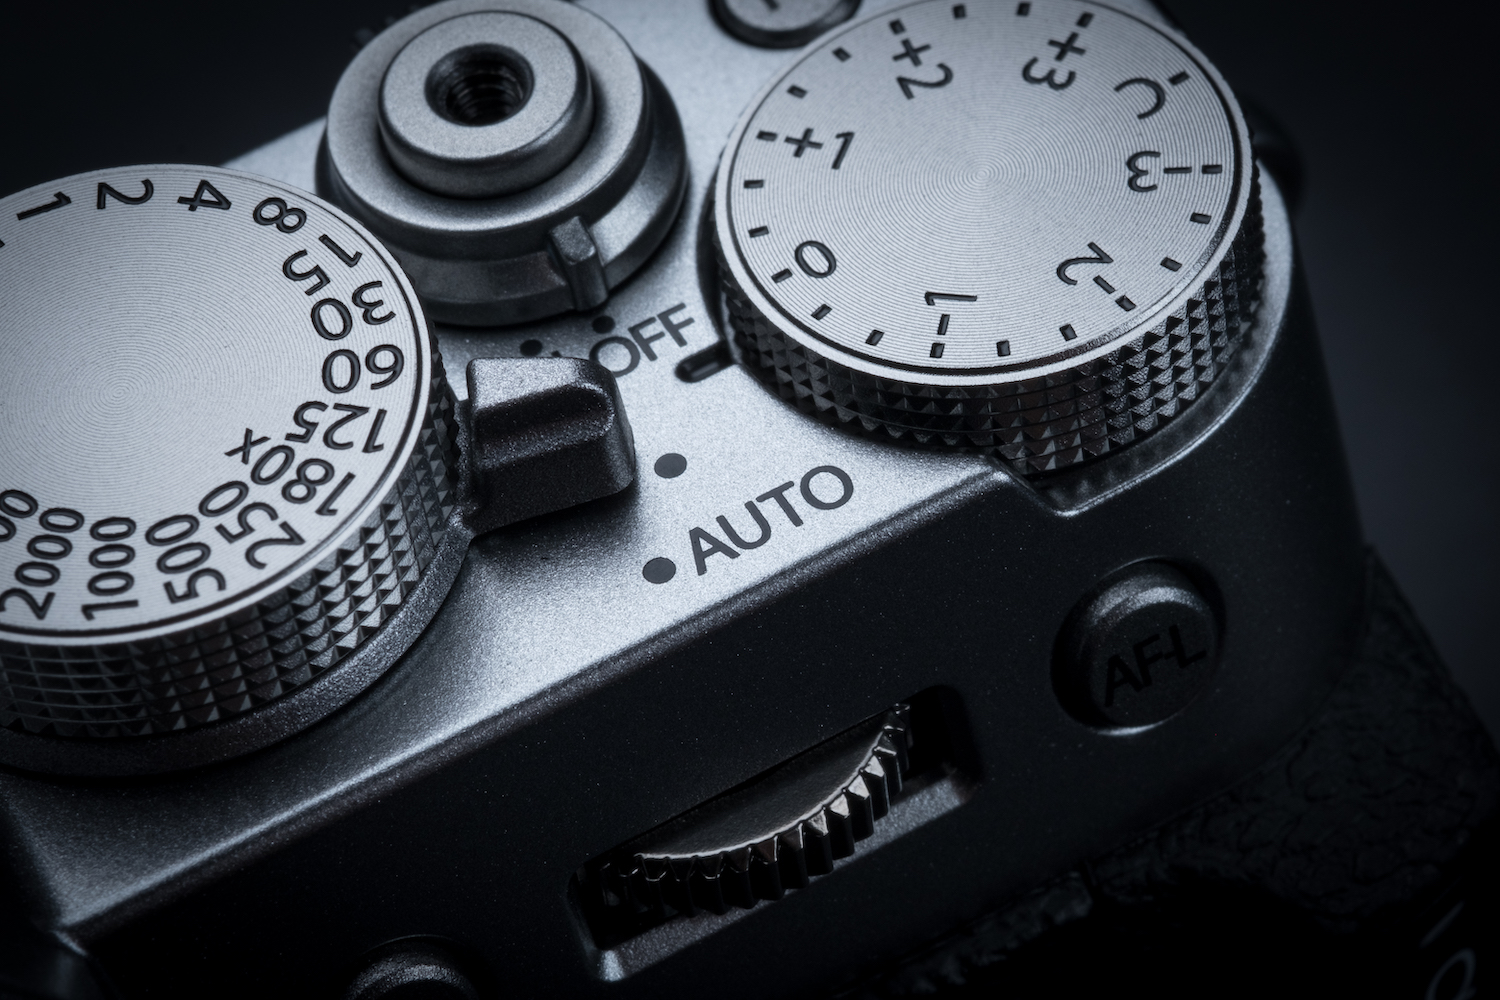 Fuji camera close up showing dials and shutter button